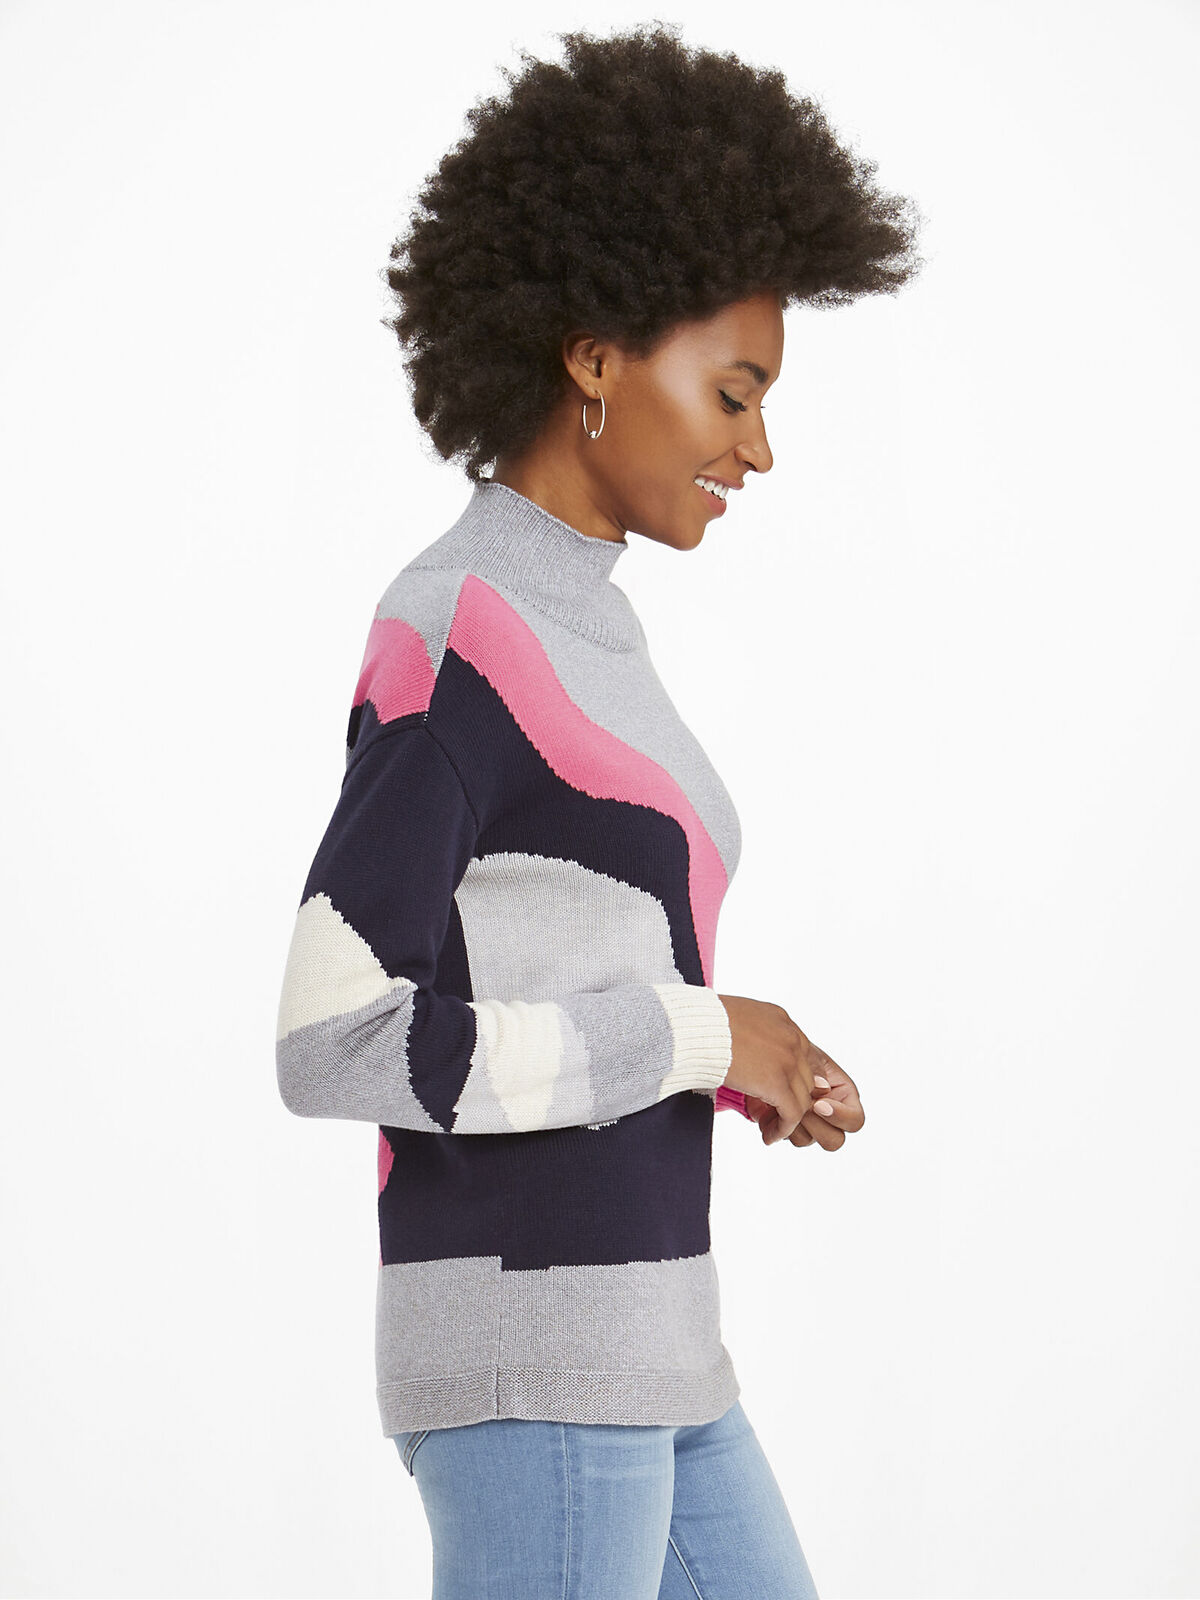 The Bright Way Sweater